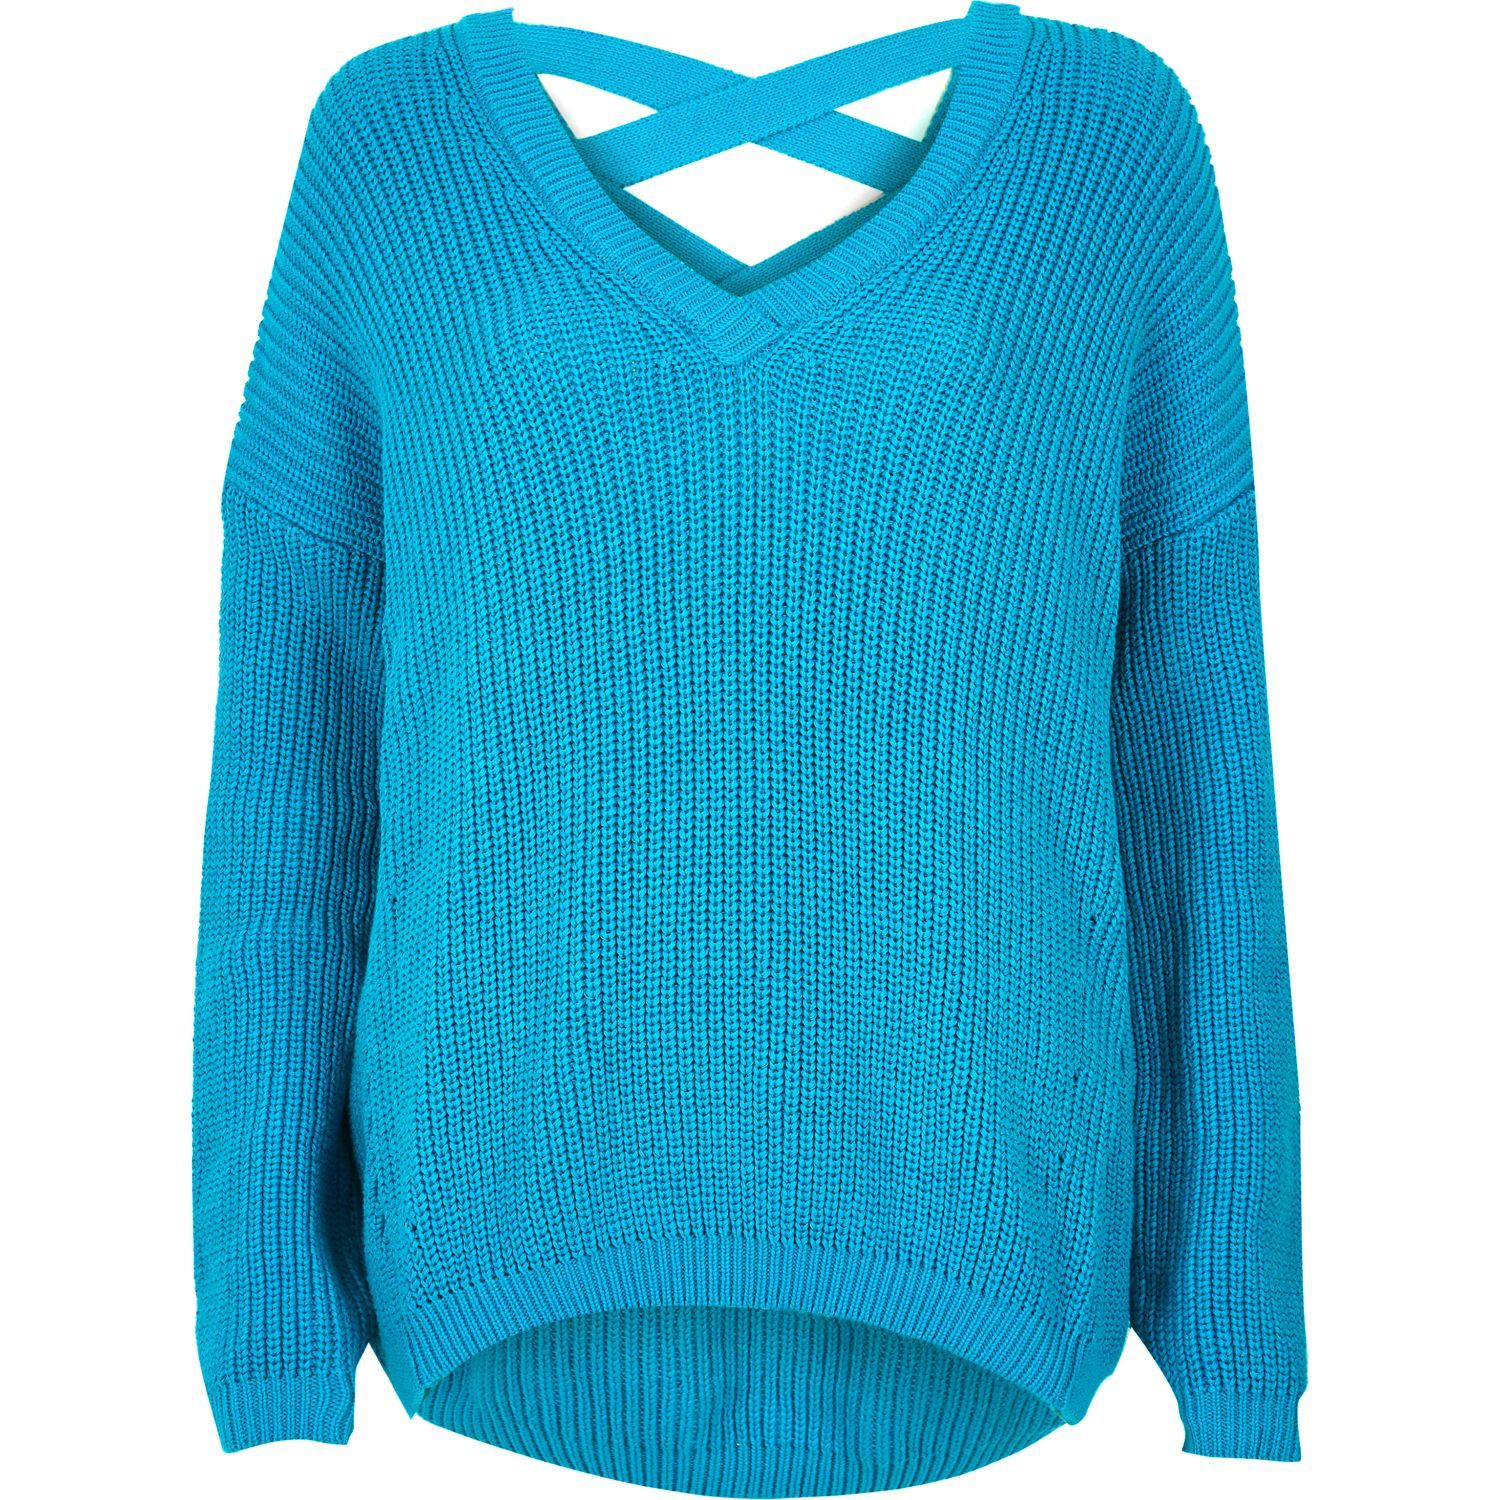 Mid weight knitwear Slouchy fit Deep V-neck Long sleeve Cross strap back detail